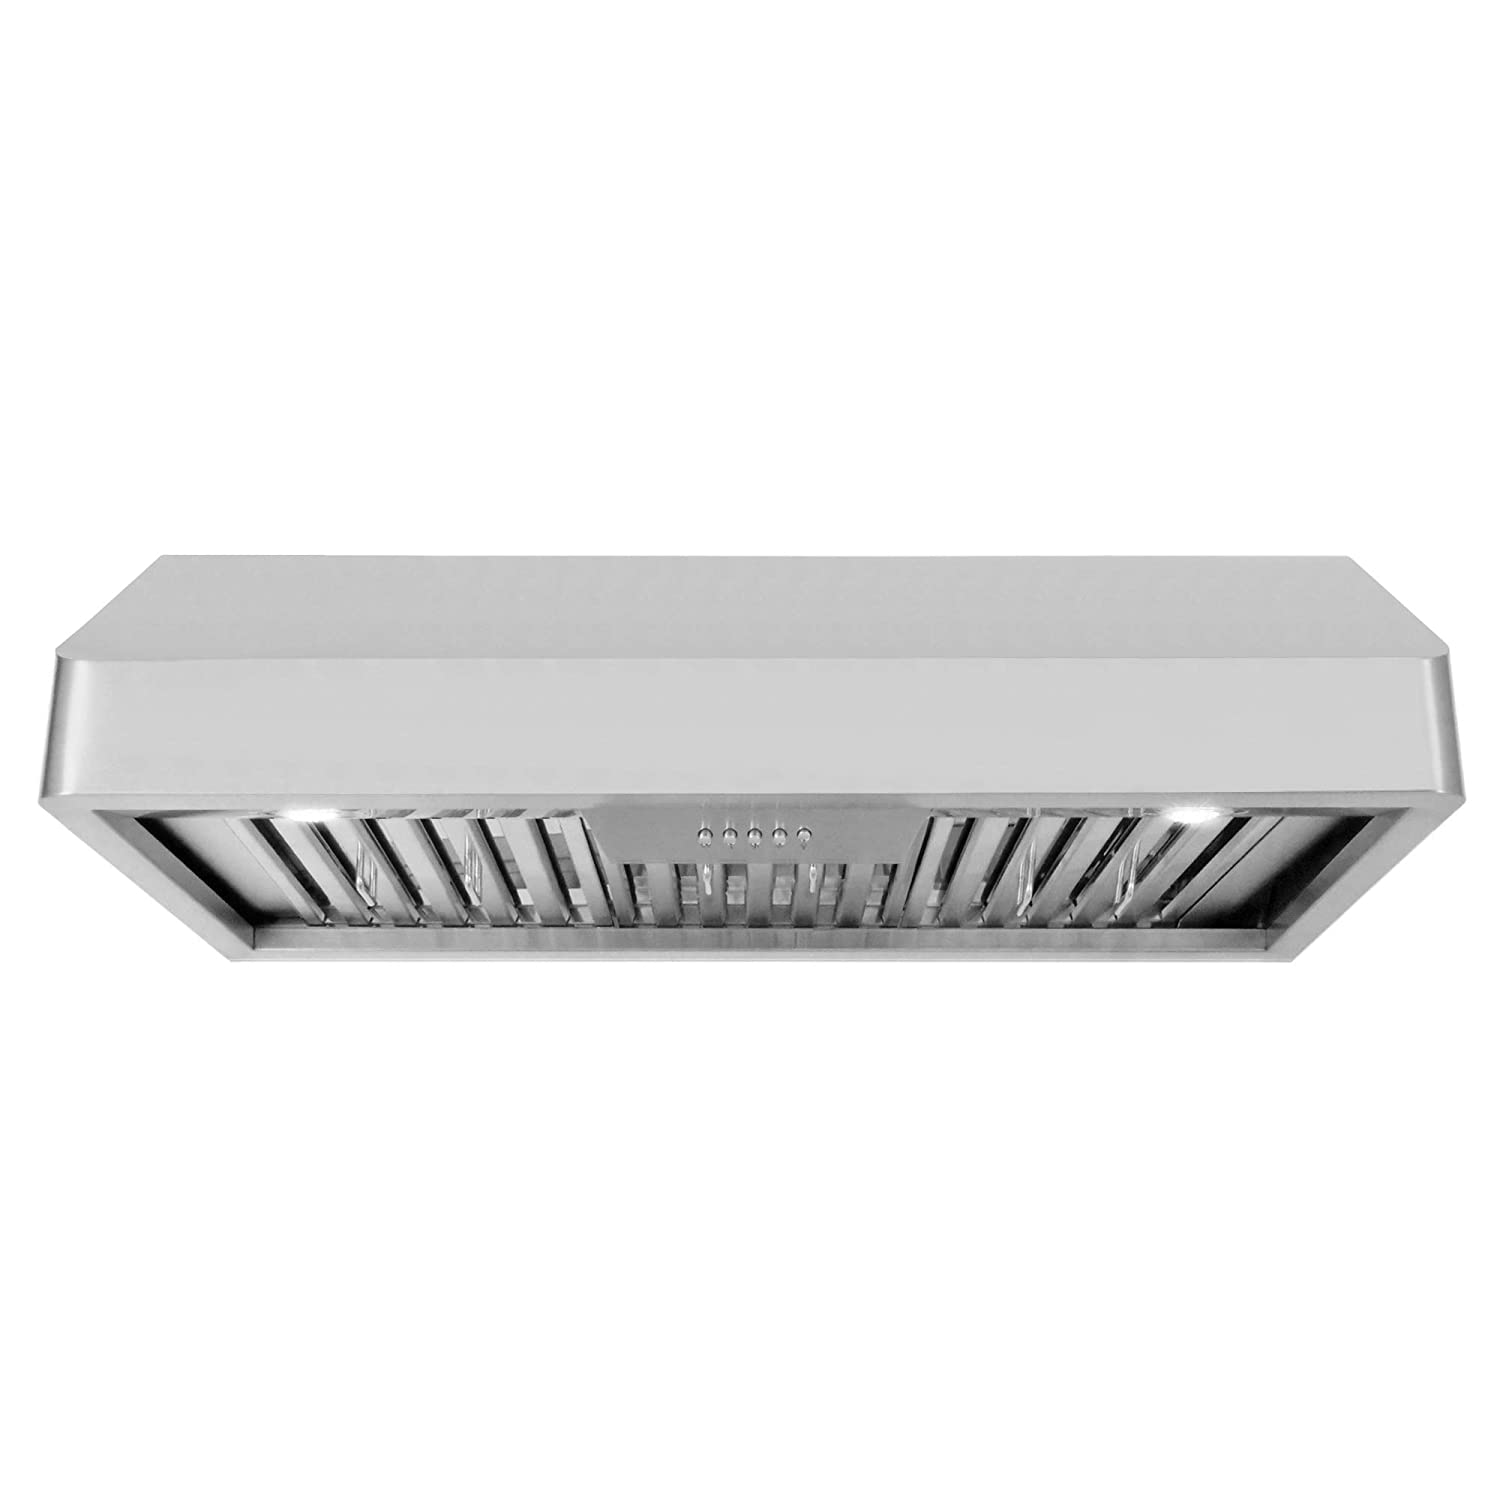 Cosmo QB90 36-in Under-Cabinet Range Hood 900-CFM Ductless Convertible Duct, Kitchen Stove Vent with LED Light, 3 Speed Exhaust Fan, Dishwasher-Safe Permanent Filter (Stainless-Steel)